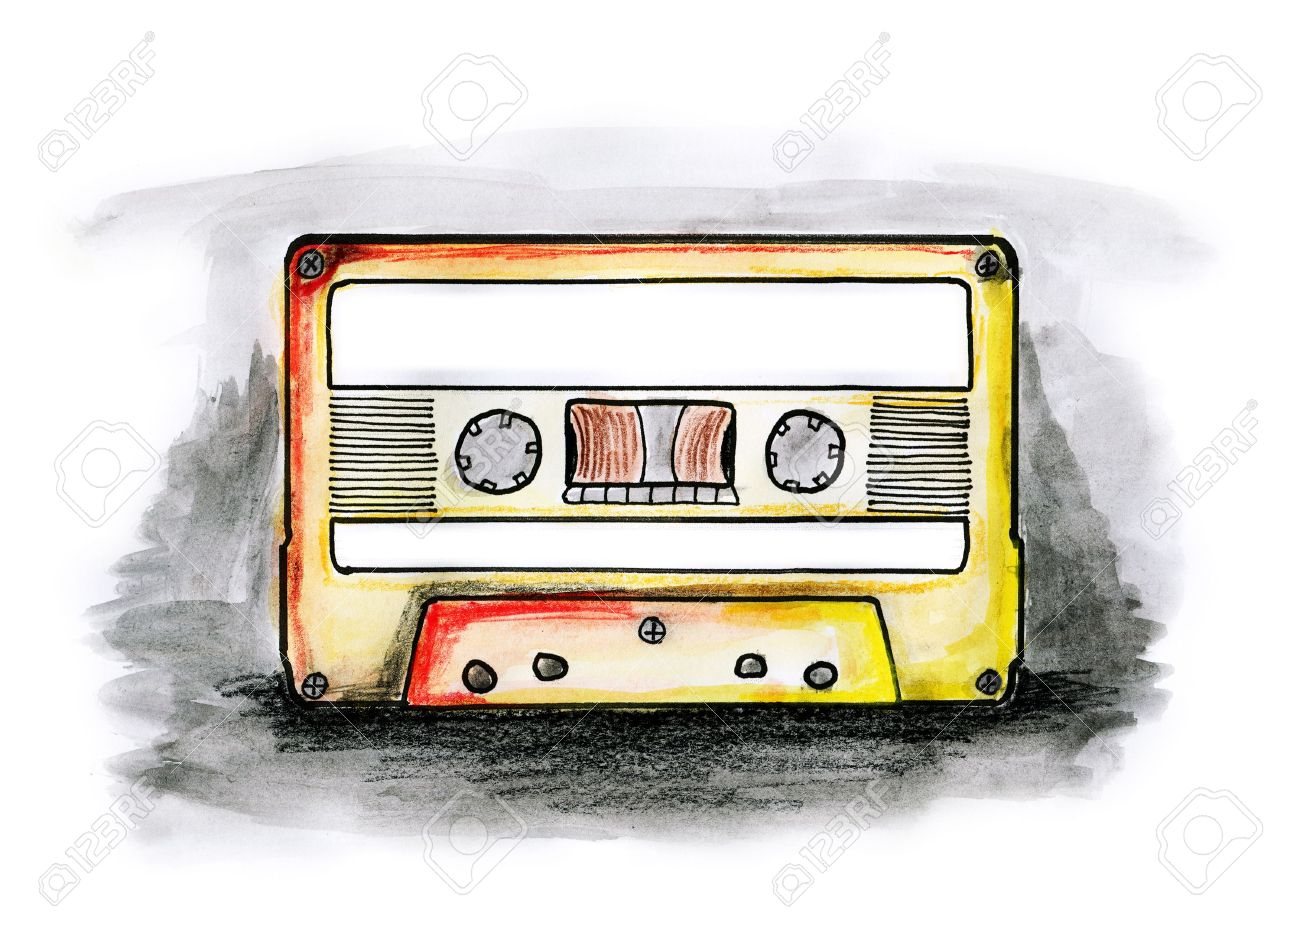 1300x935 Drawing Illustration Of A Cassette Tape With Blank Labels